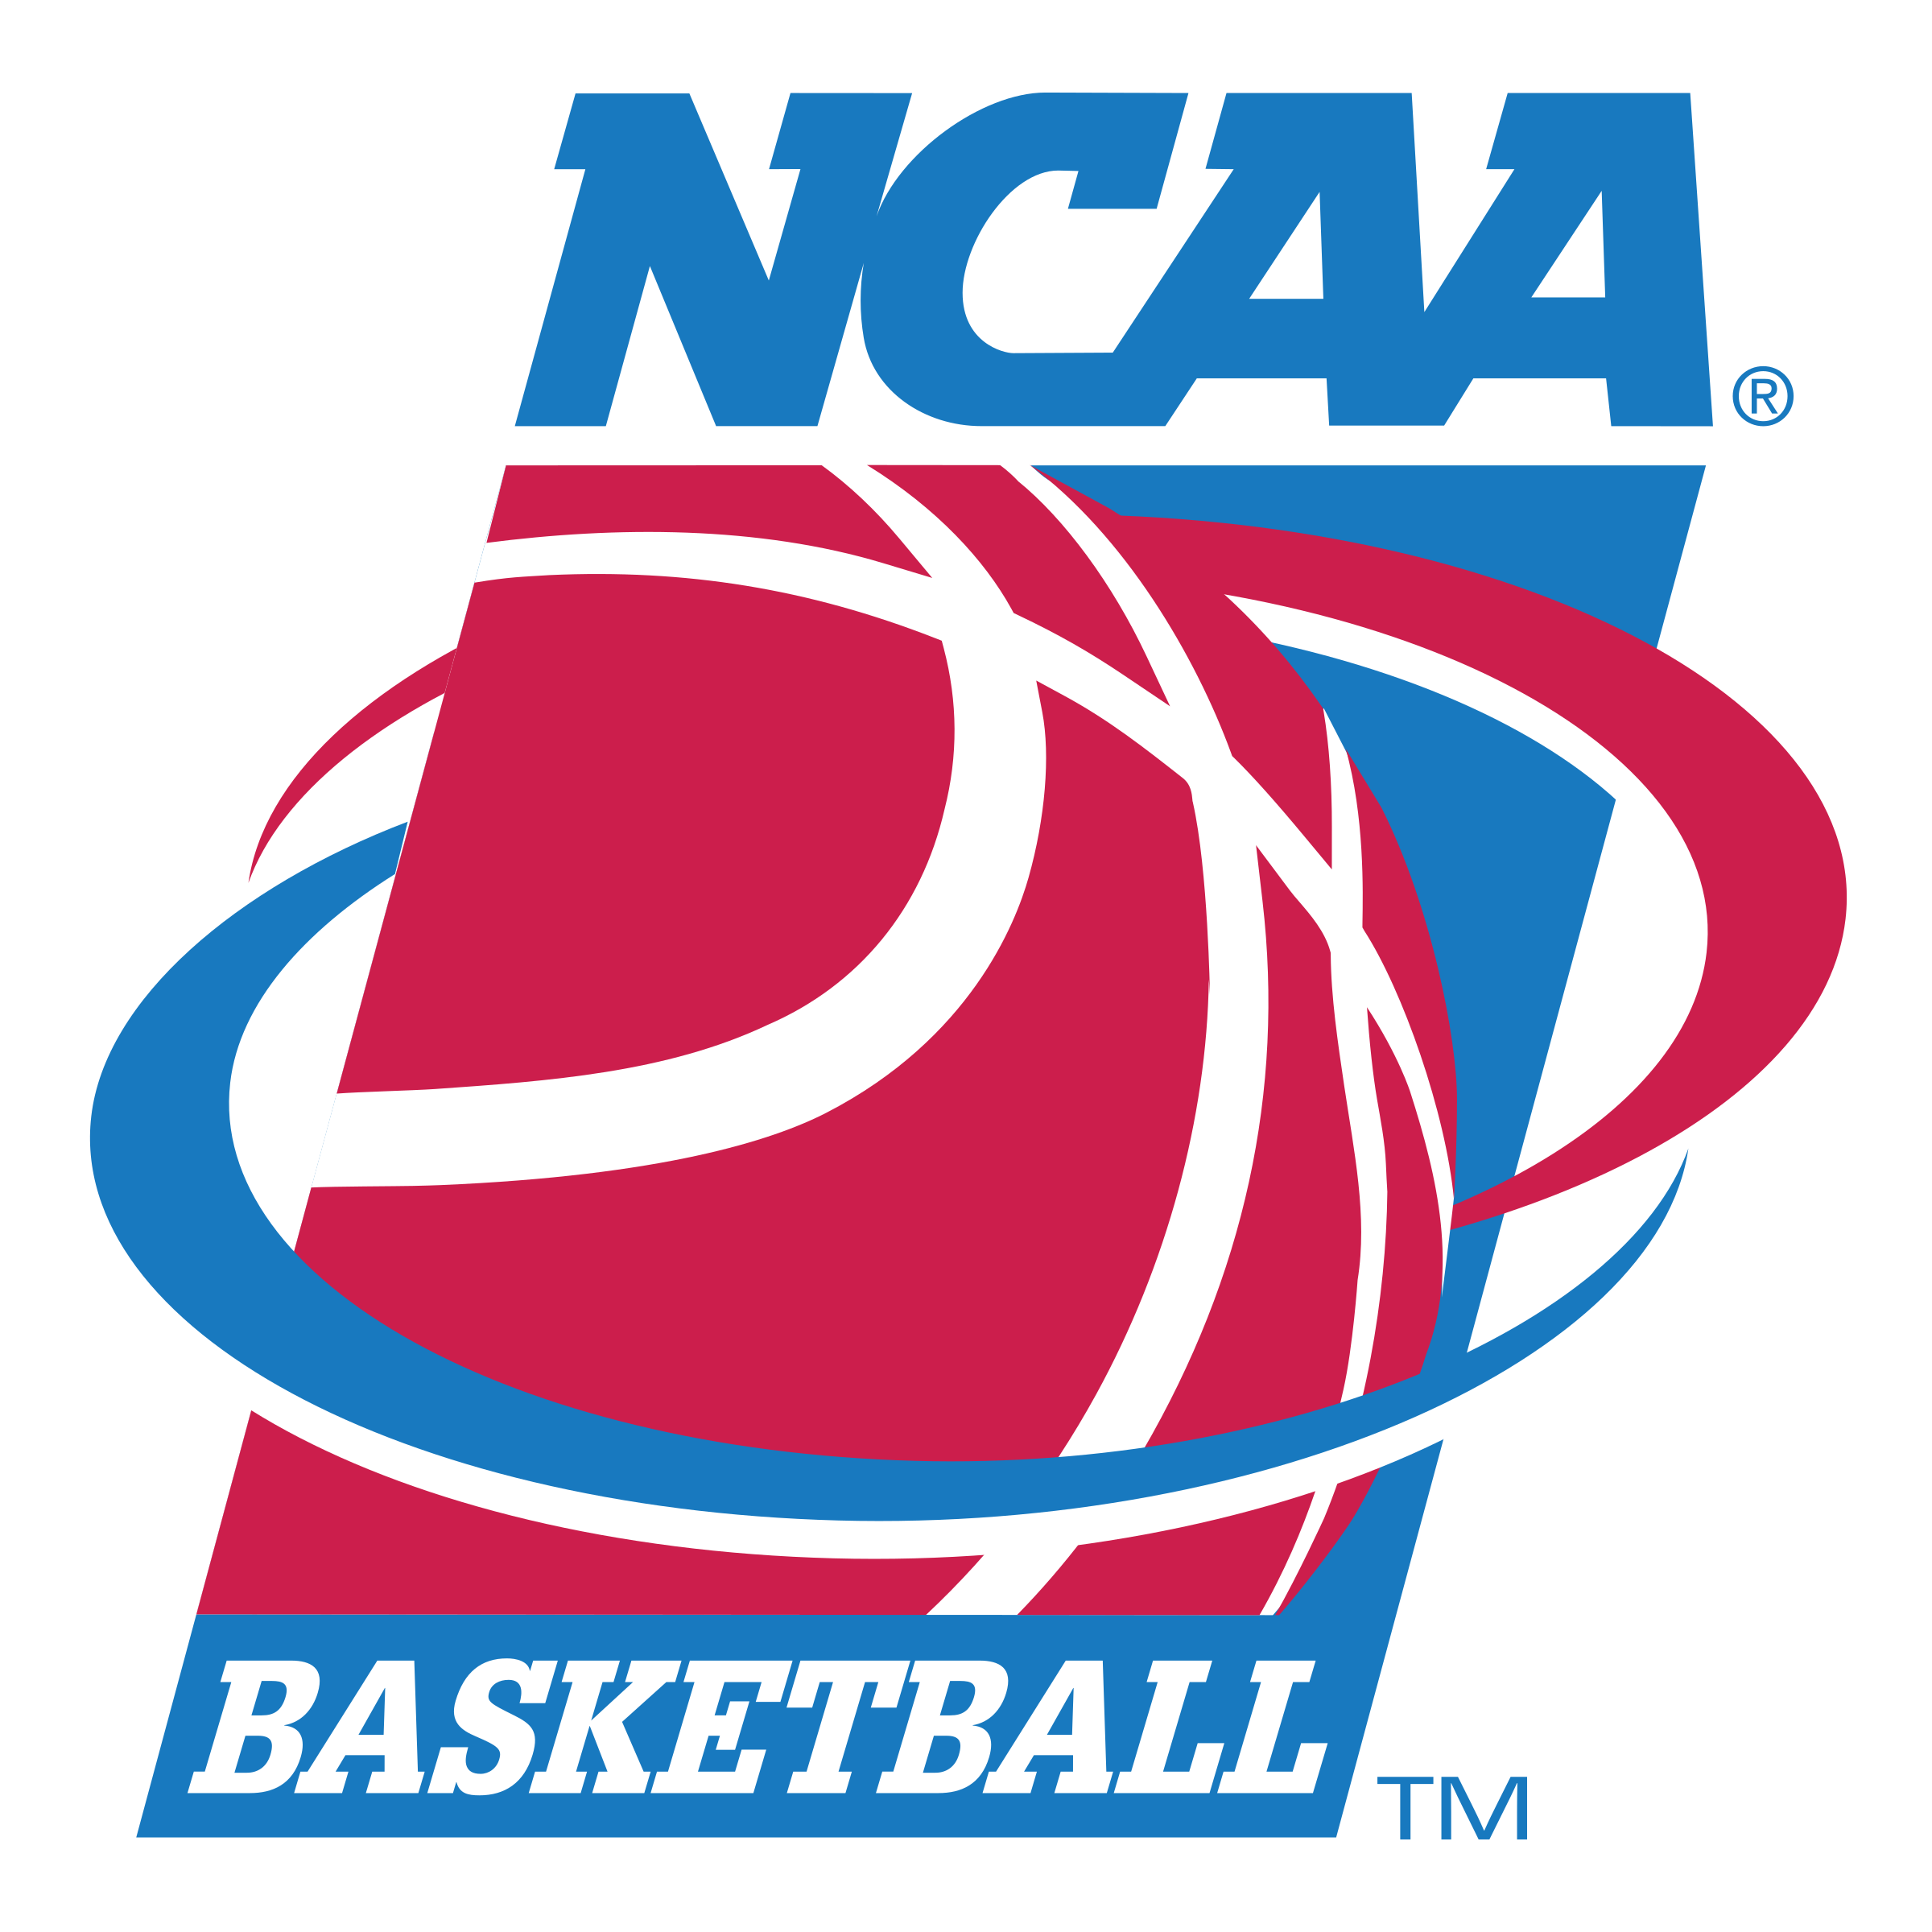 NCAA Basketball Logo PNG Transparent & SVG Vector - Freebie Supply